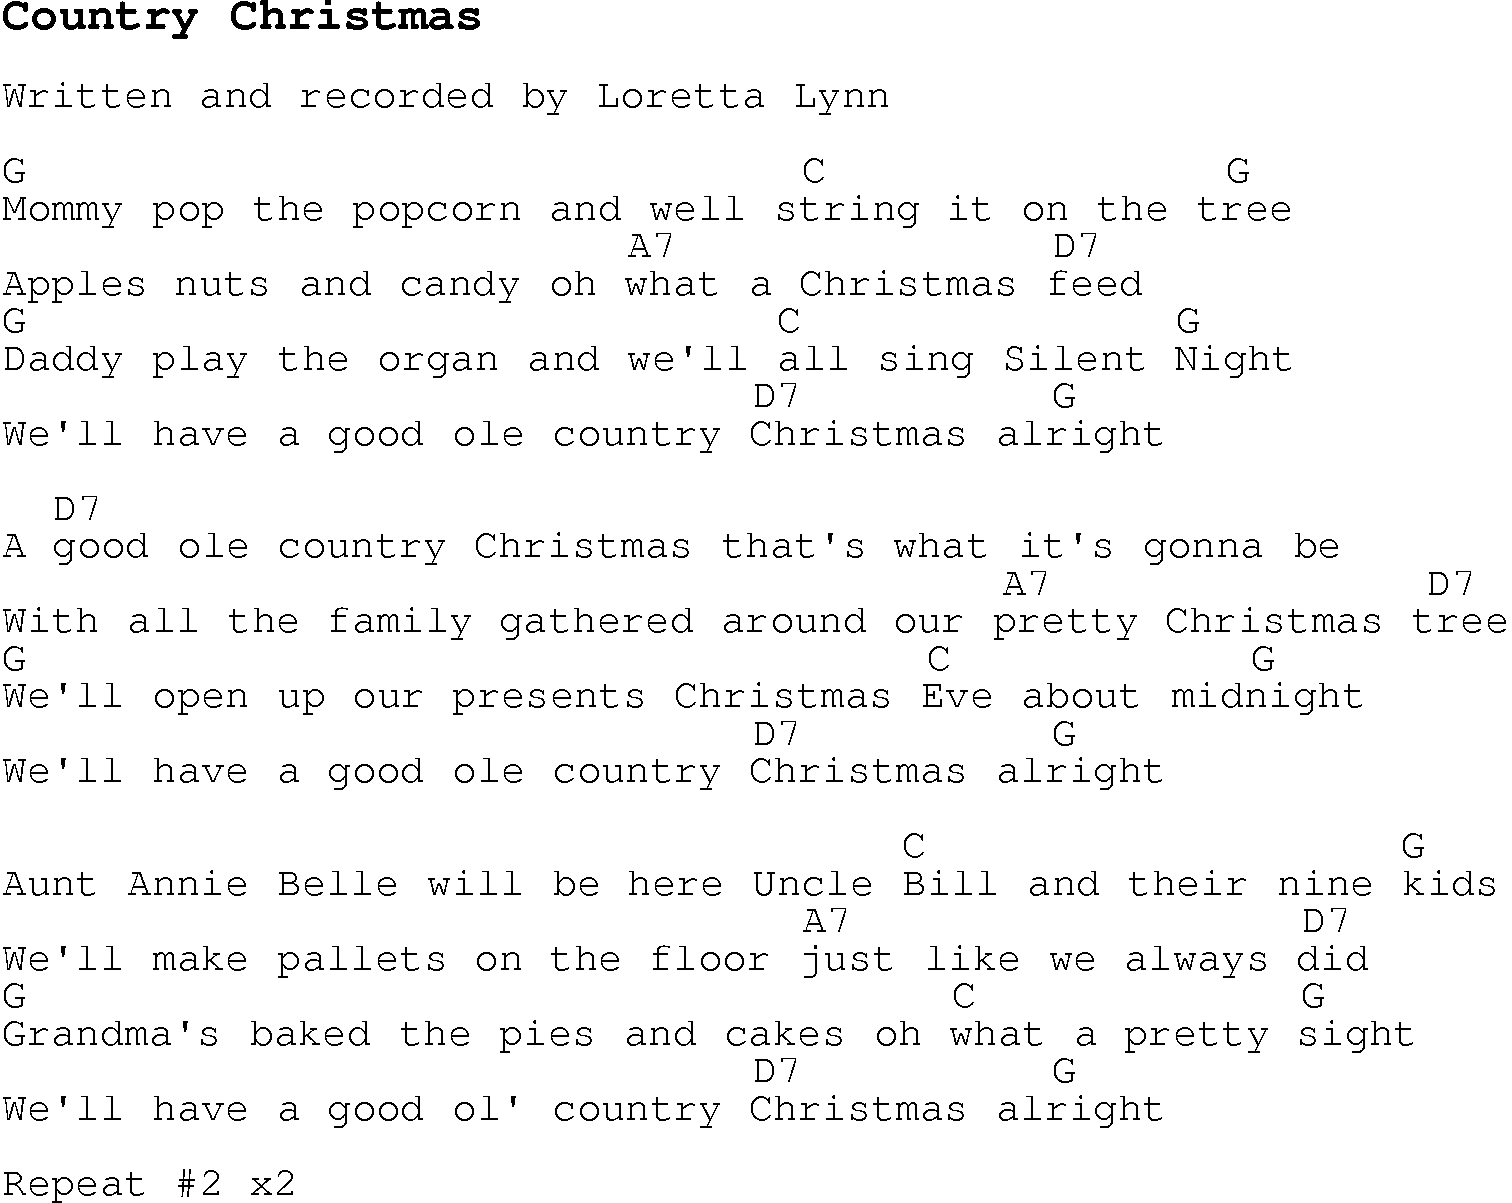 christmas songs and carols lyrics with chords for guitar banjo for country christmas - Black Christmas Songs